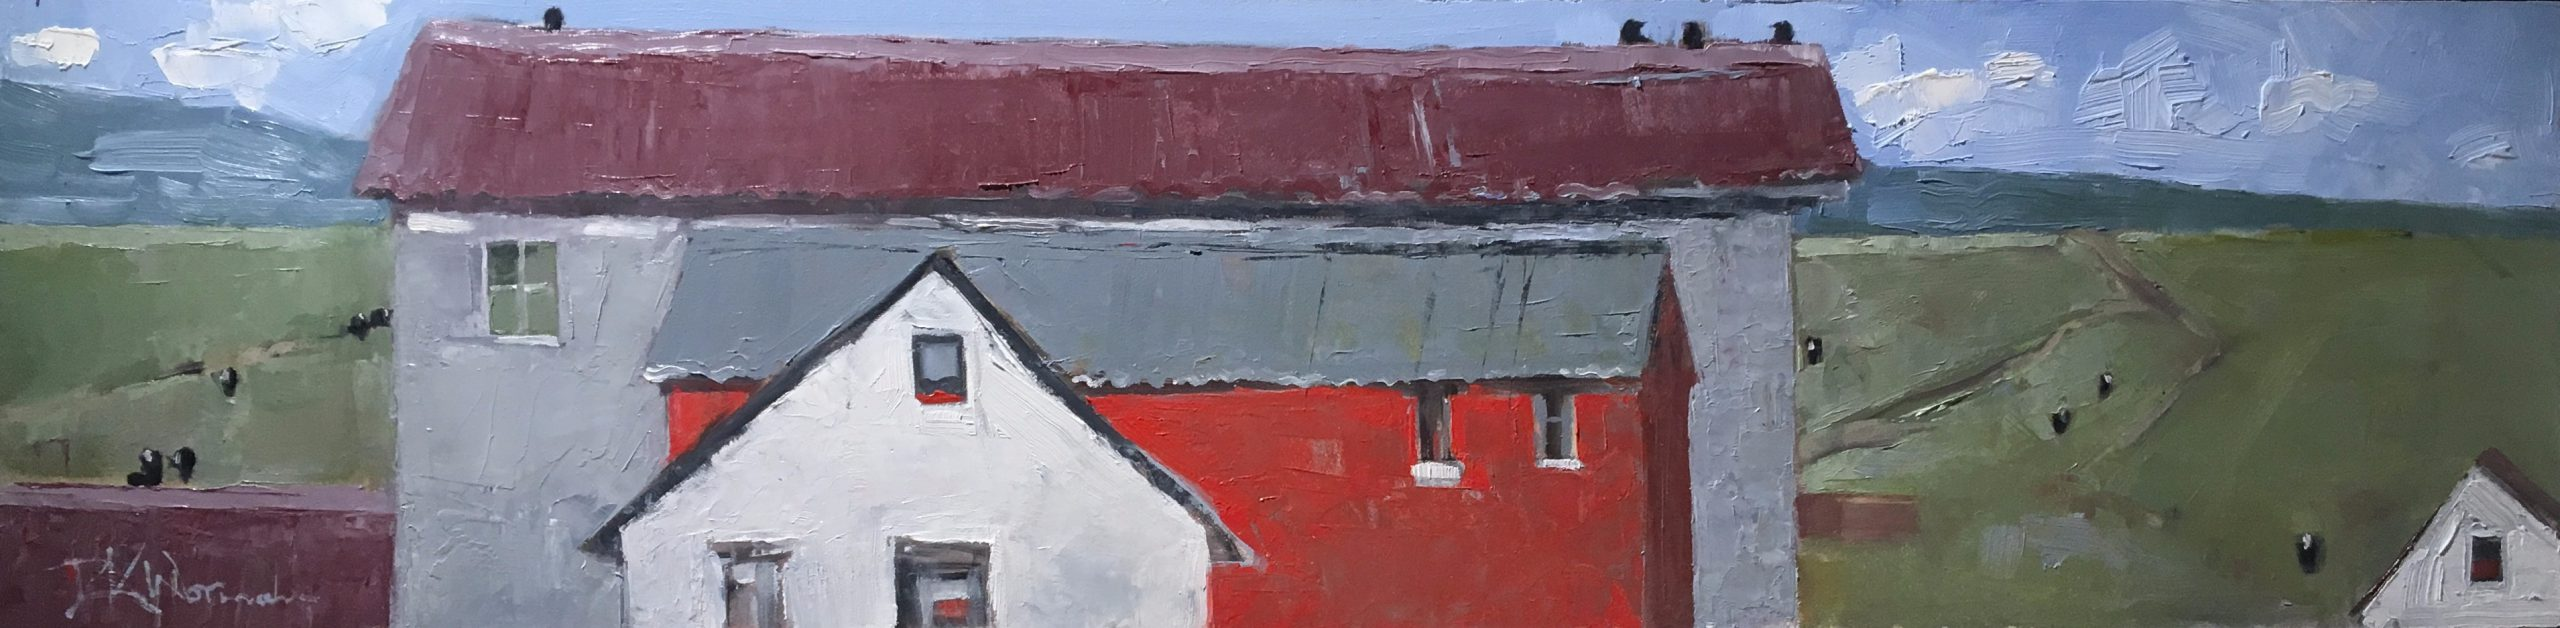 Dinah Worman - Cows, Crows, and Old Buildings